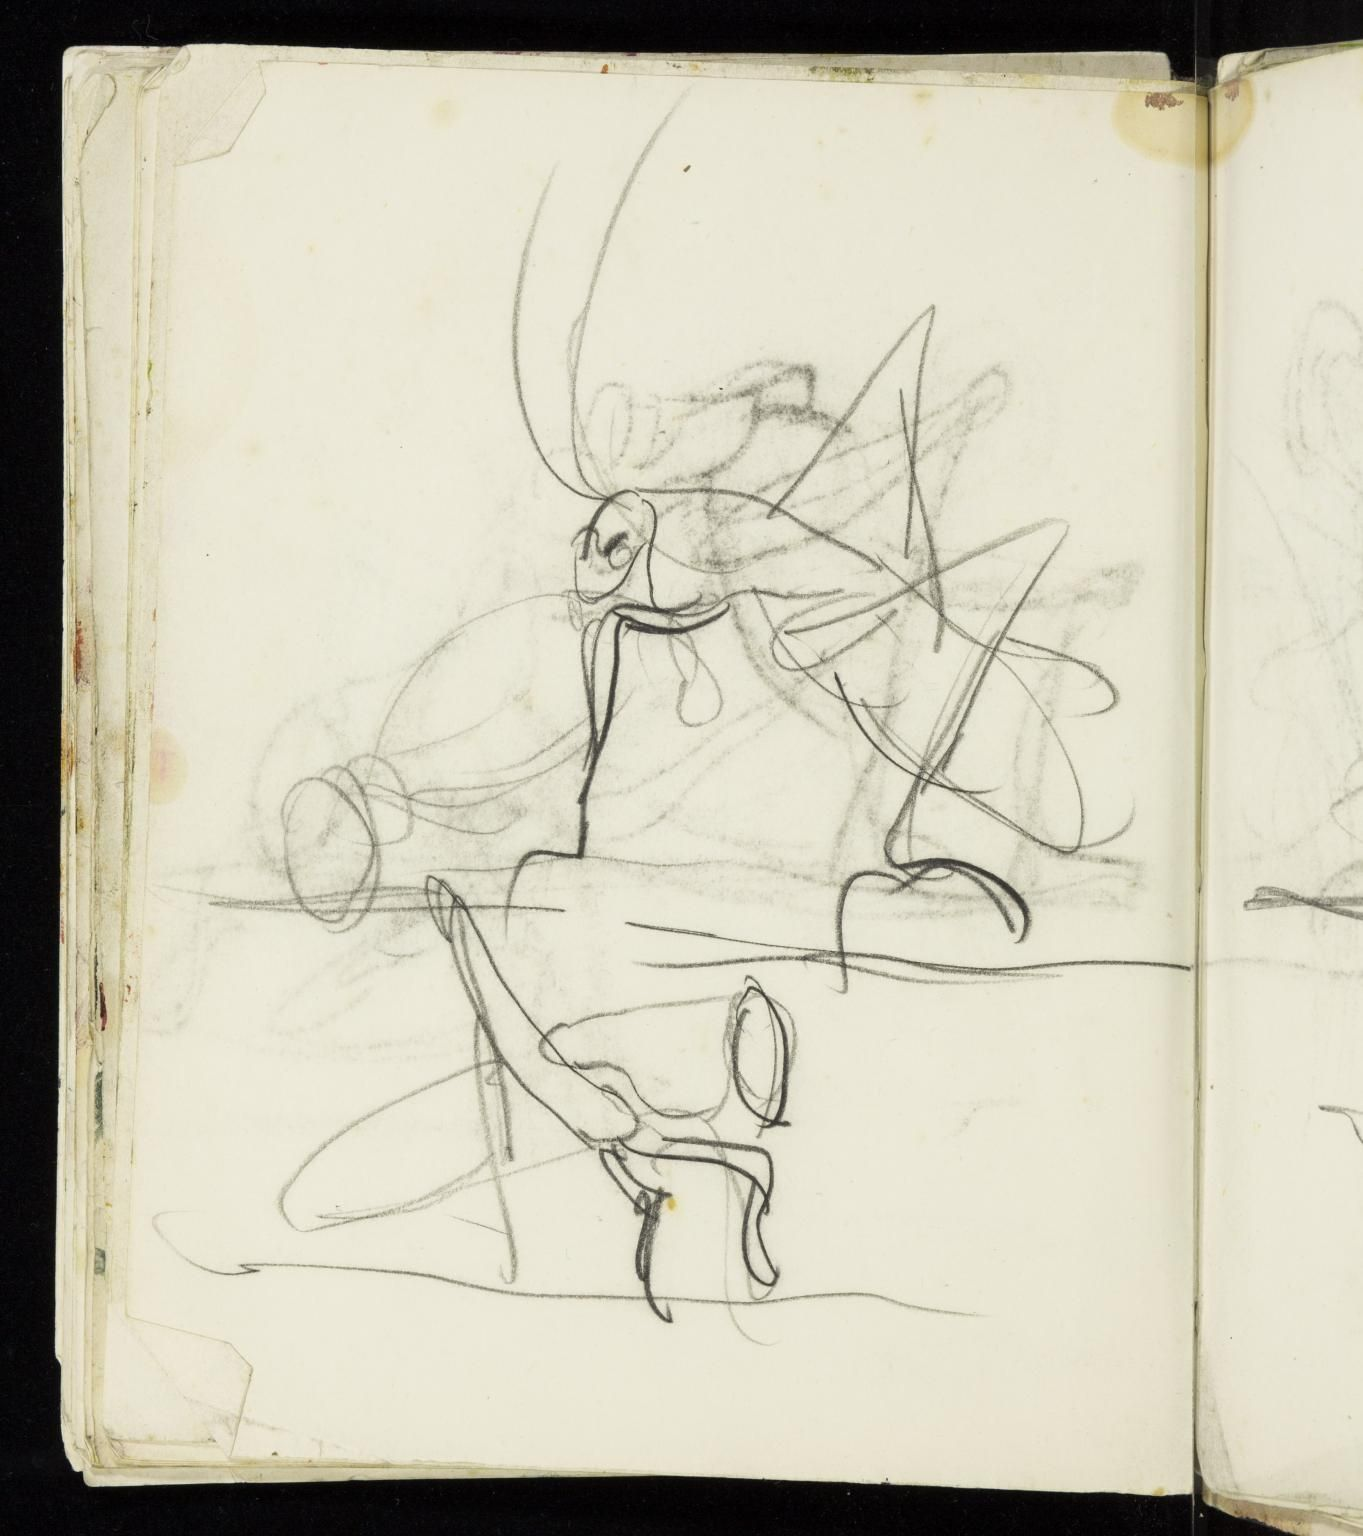 Graham Sutherland OM 'Studies of three grasshopper-type insects ', 1947–57 © The estate of Graham Sutherland